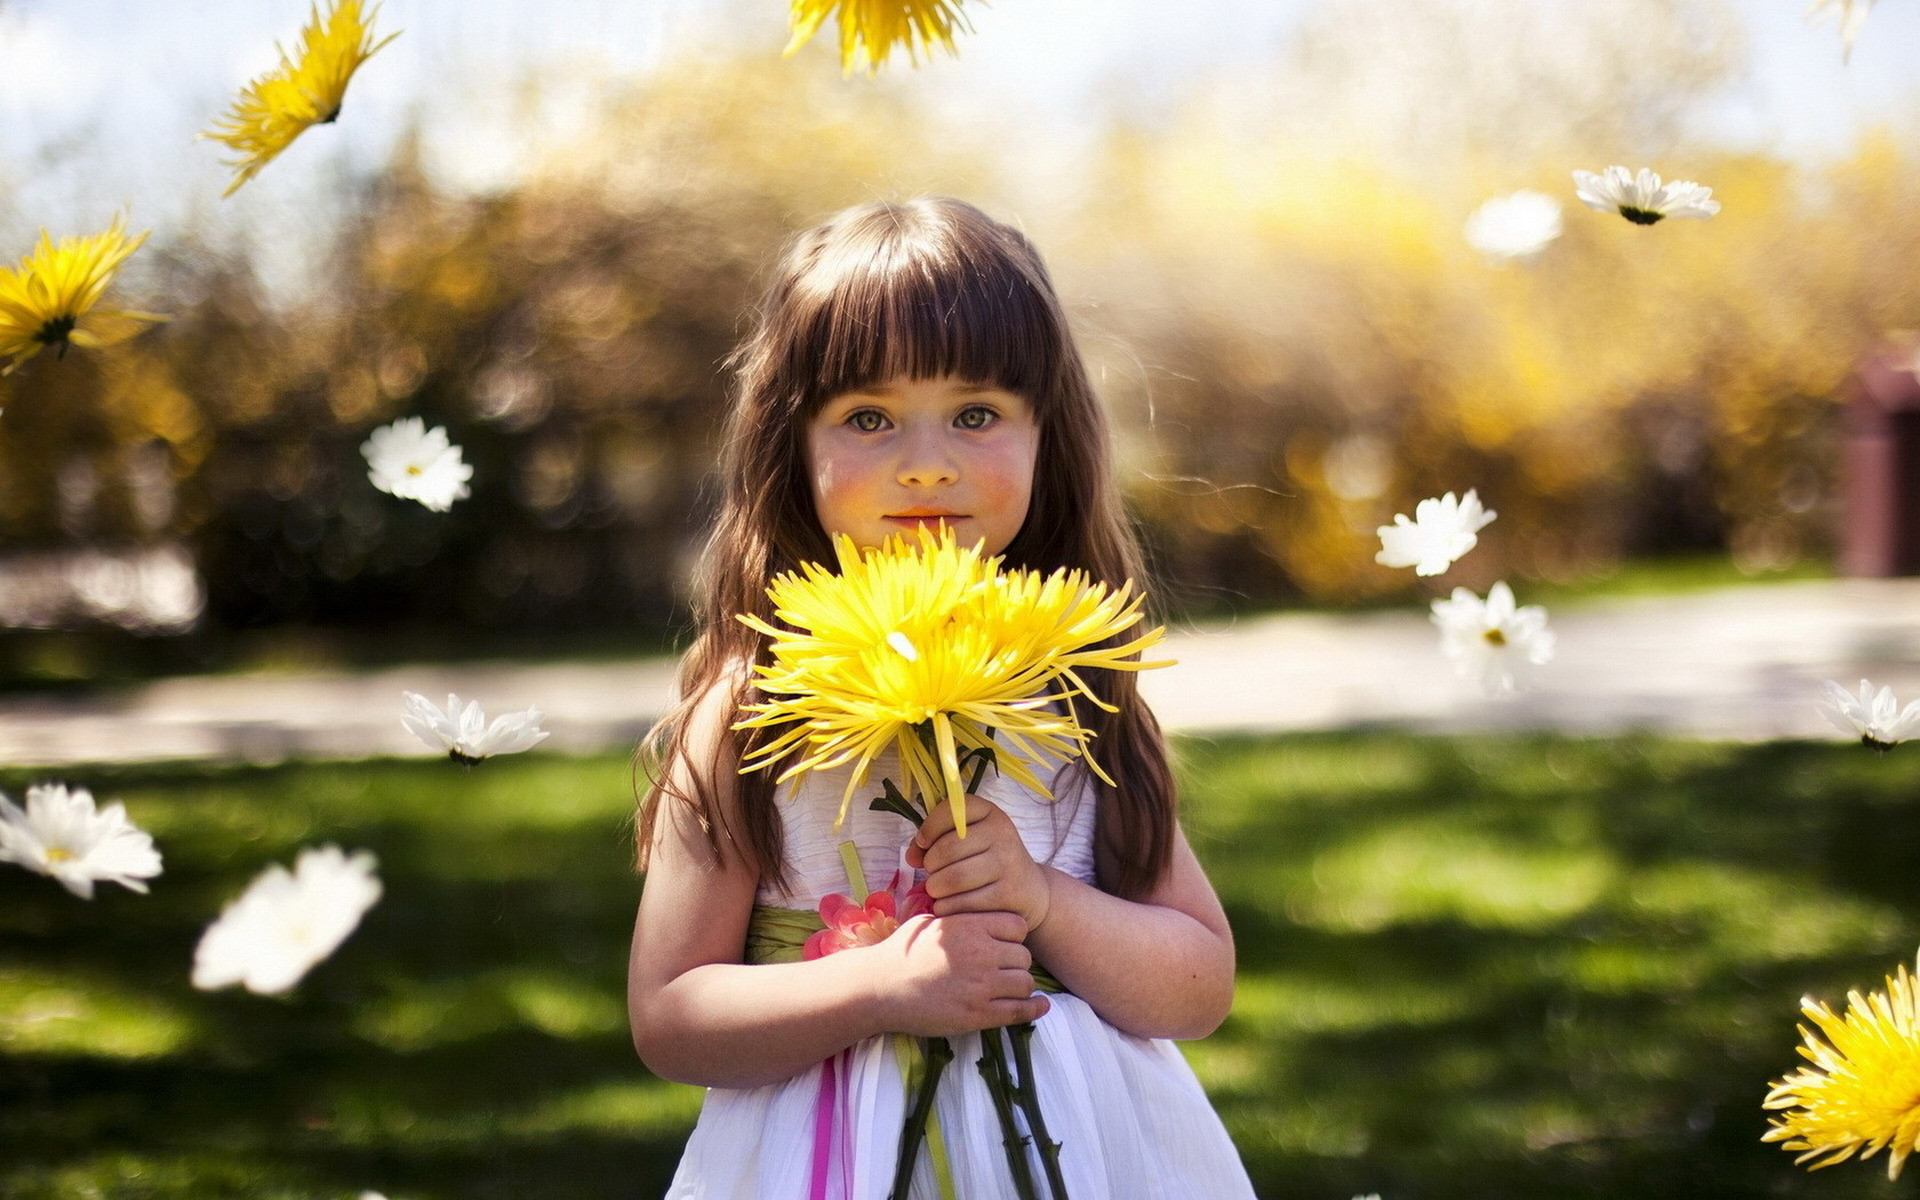 Barefoot Kids Wallpapers (52+ images)